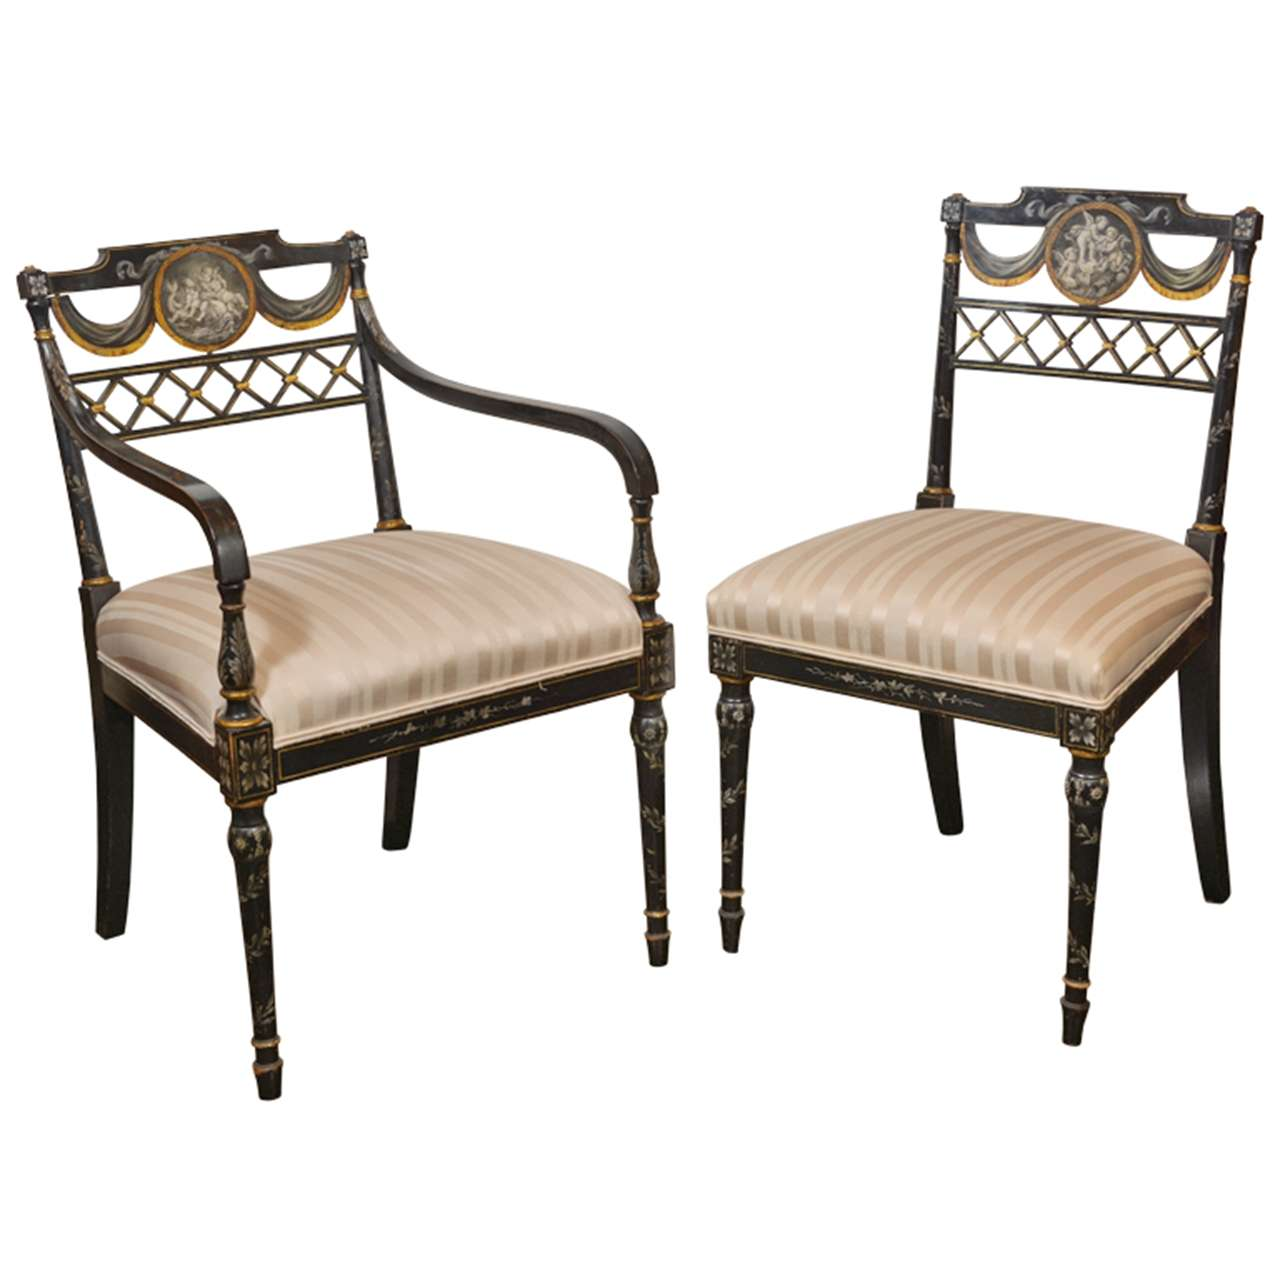 Set of Important Regency Period Black Lacquered Chairs